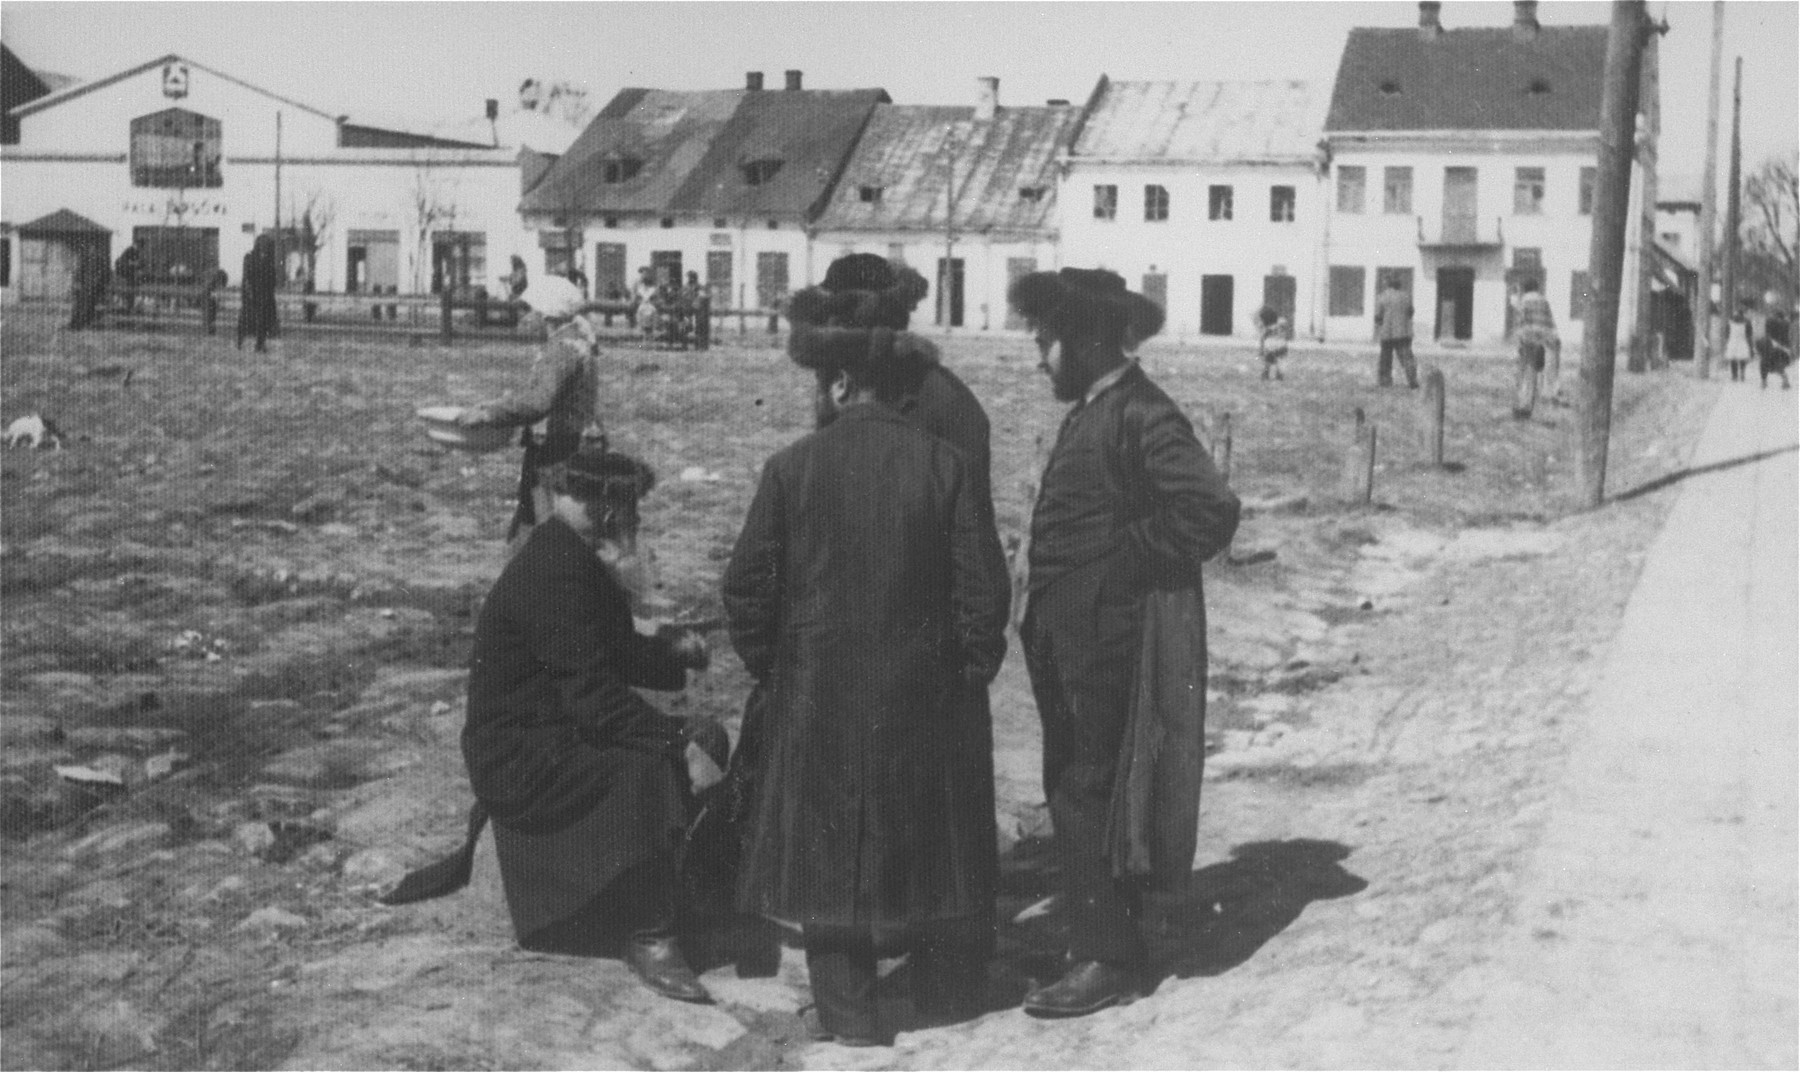 A group of Hasidic Jews in the market square of a small town near Stanislawow.